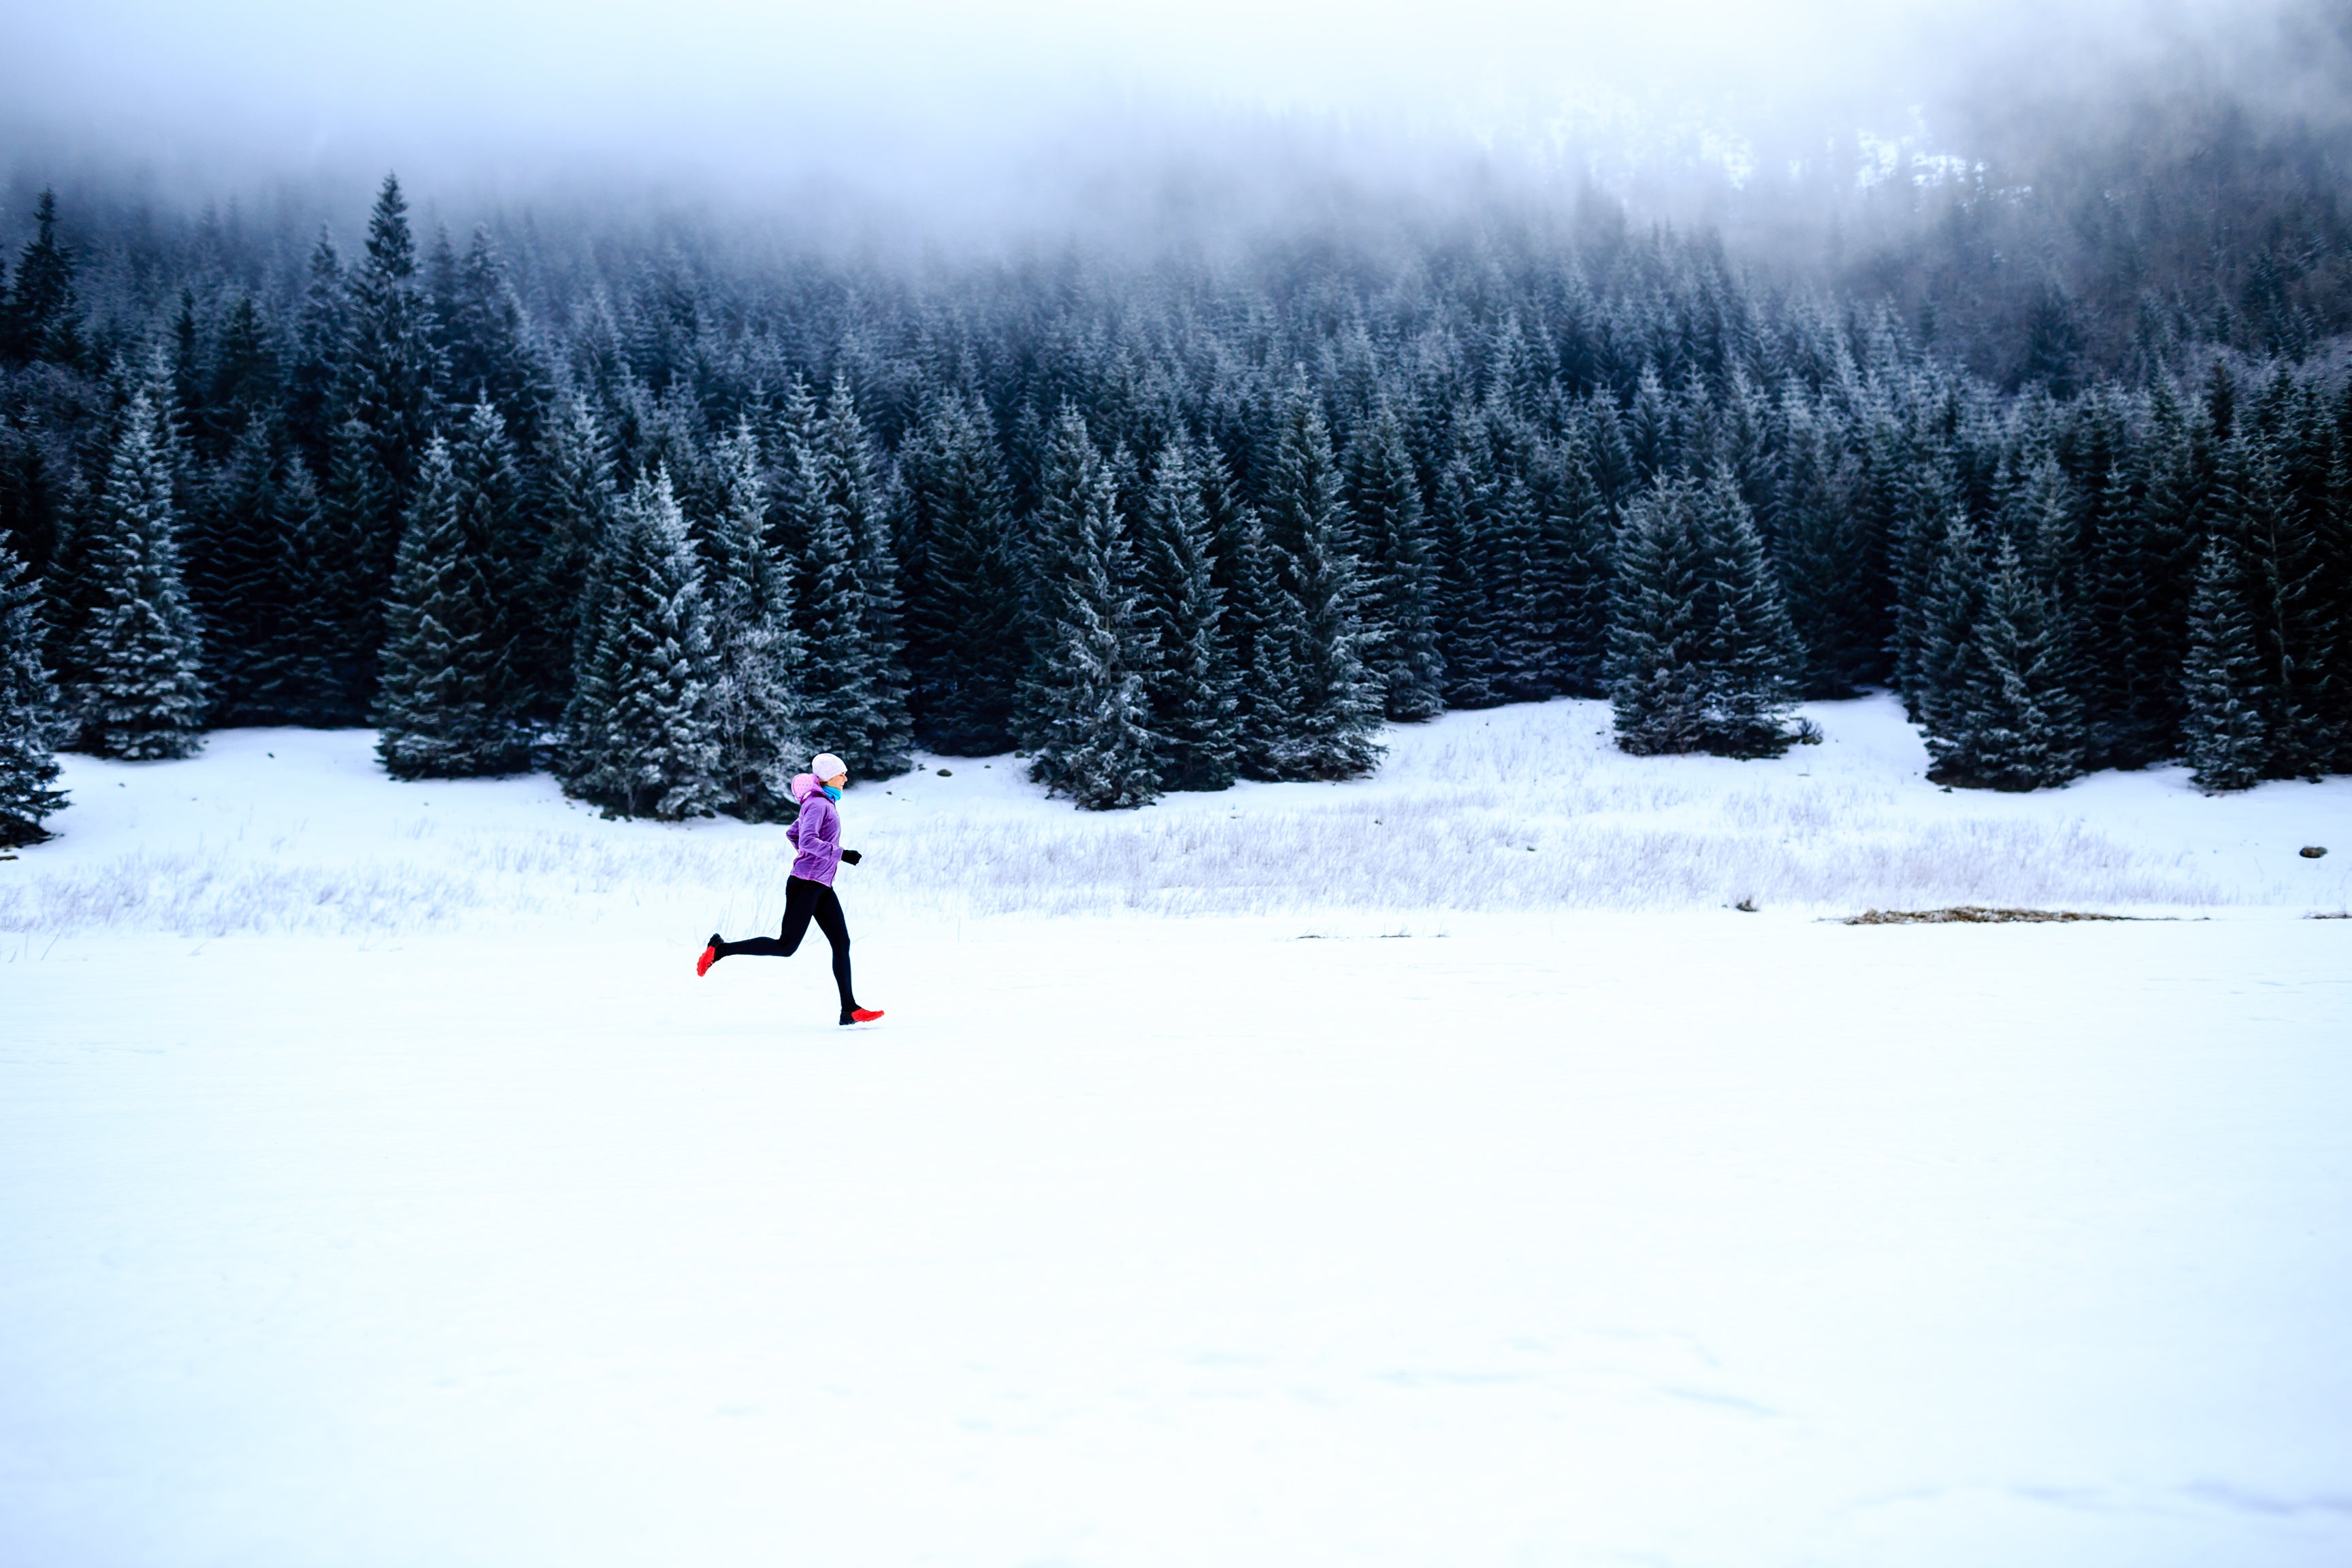 Joint Pain and Relief Exercise in the Winter